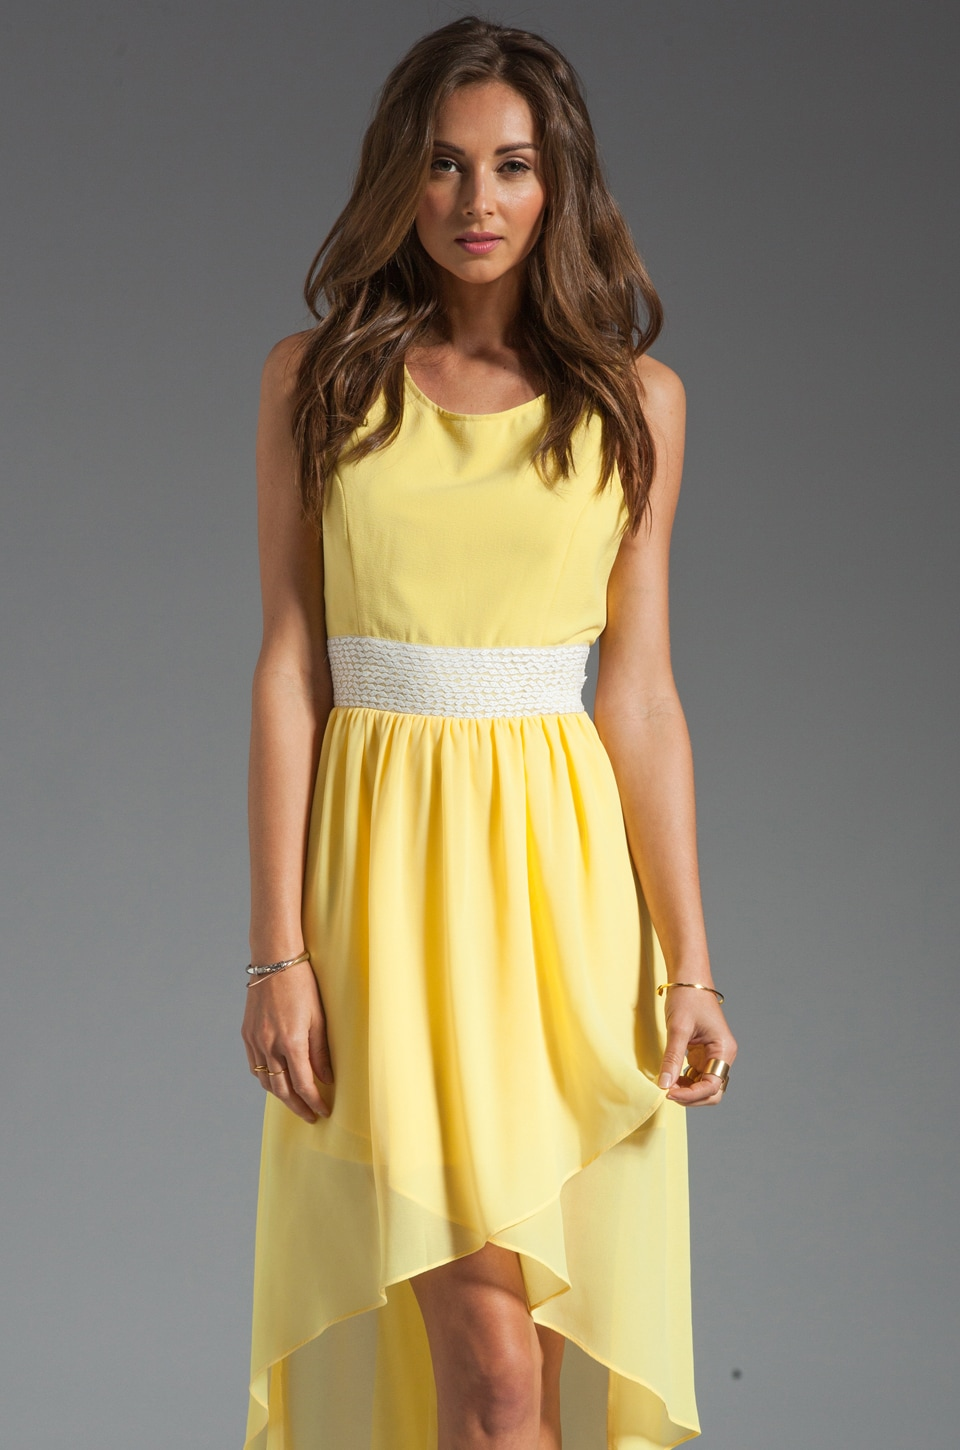 MM Couture by Miss Me Sleeveless Hi Low Dress in Yellow